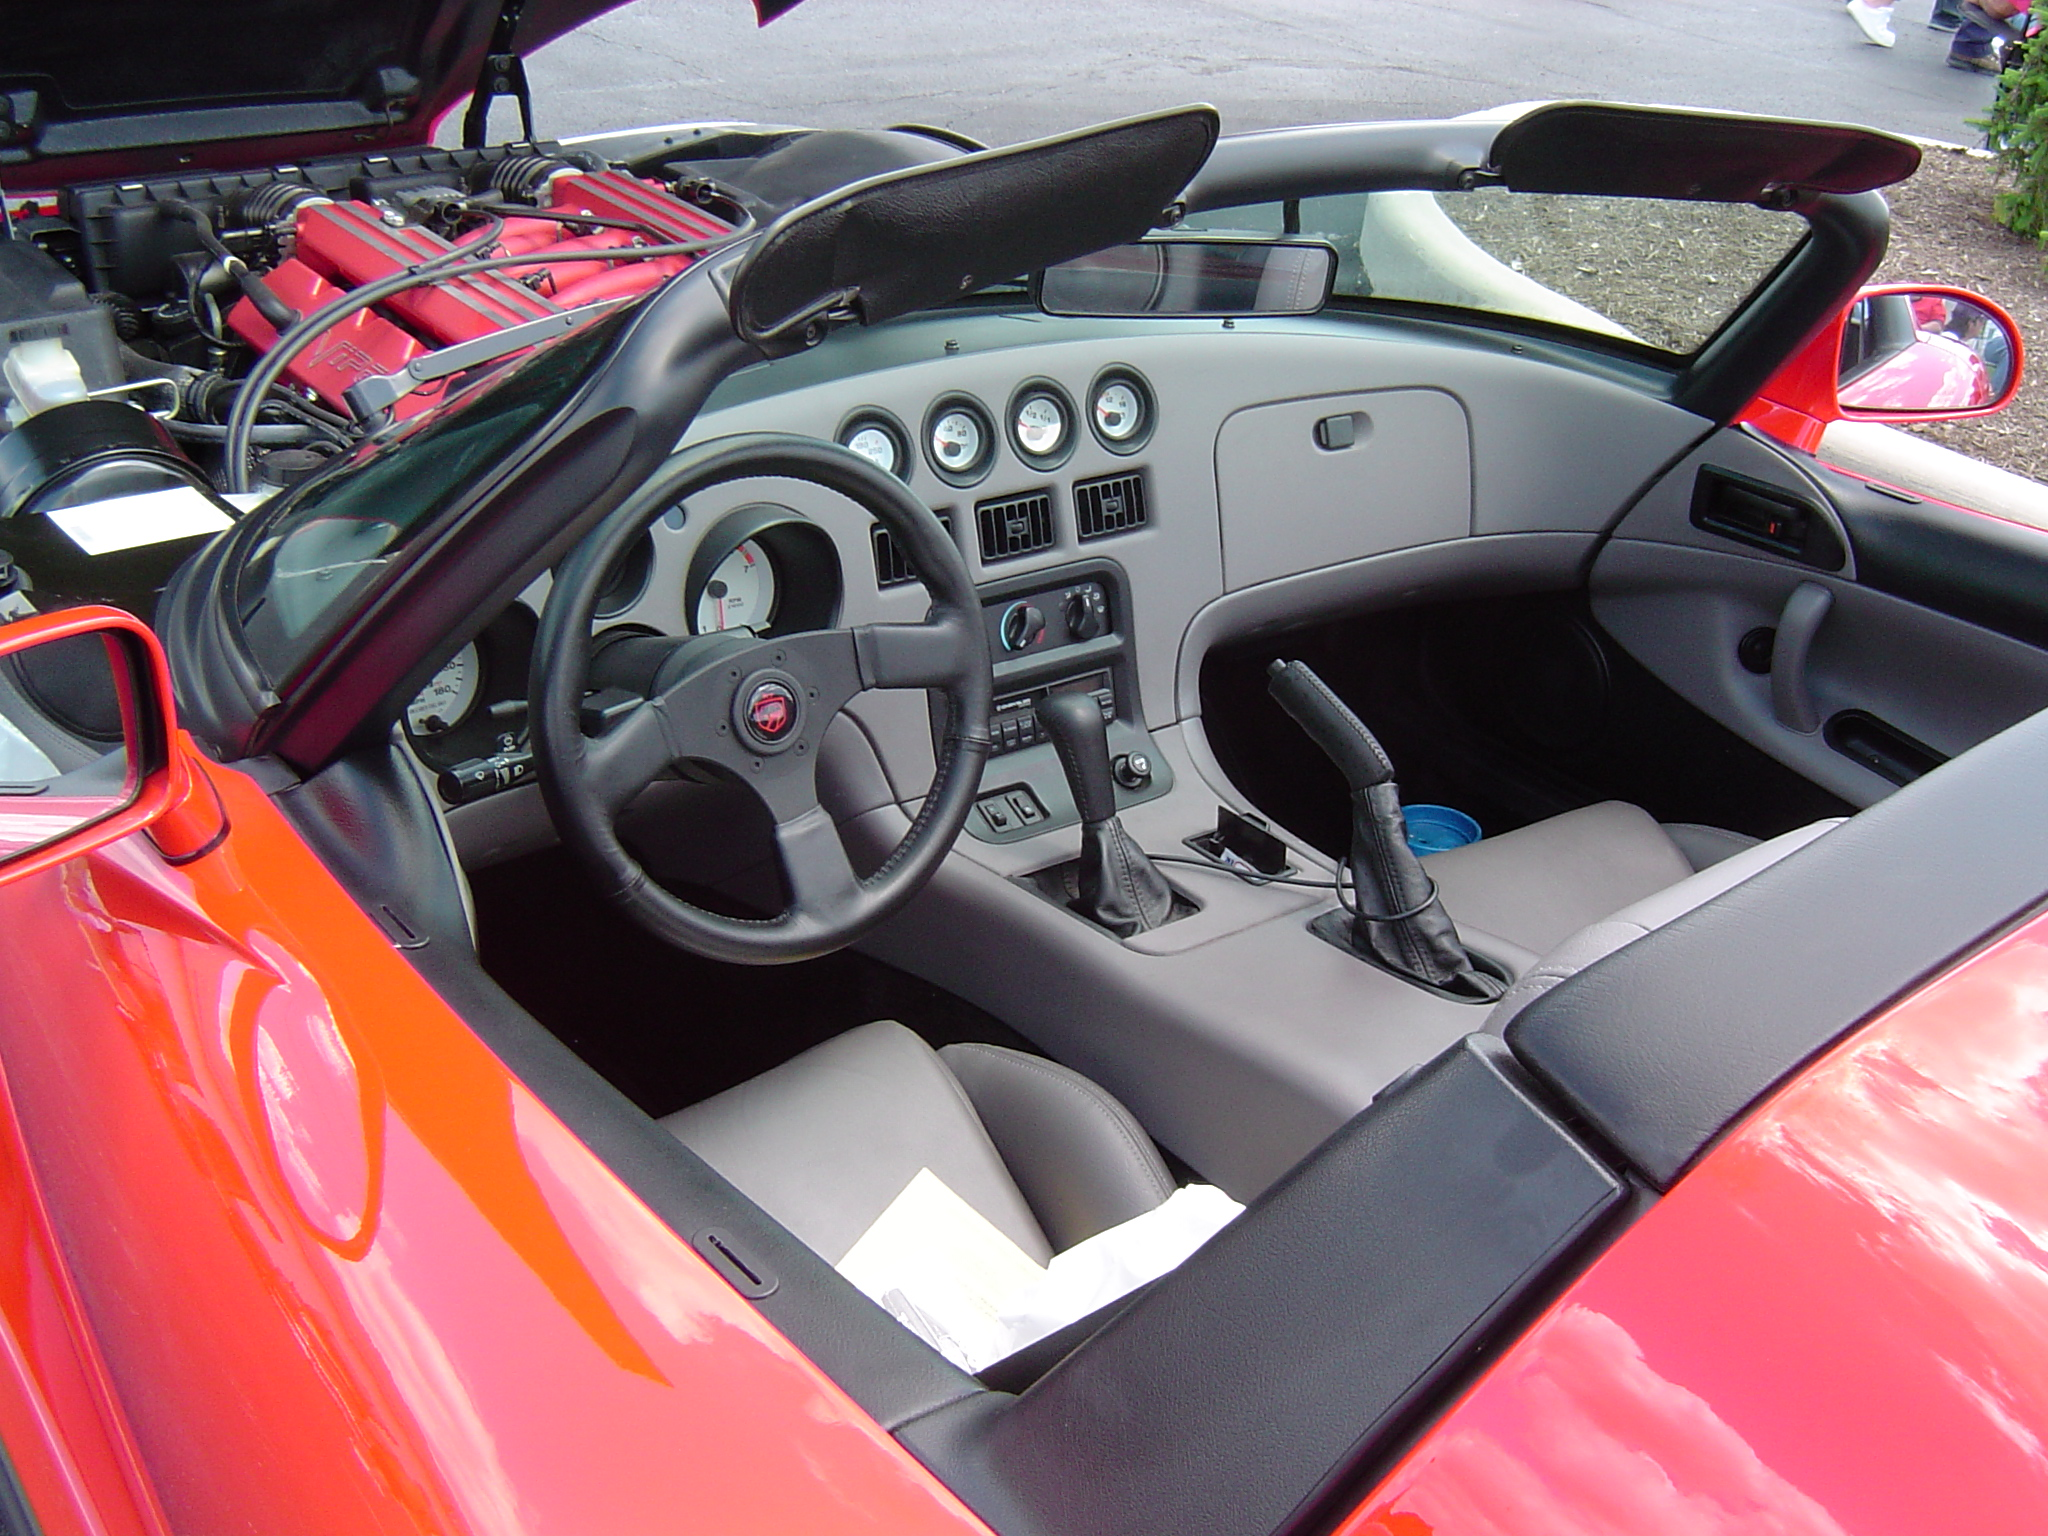 File:1992 Dodge Viper Interior.JPG